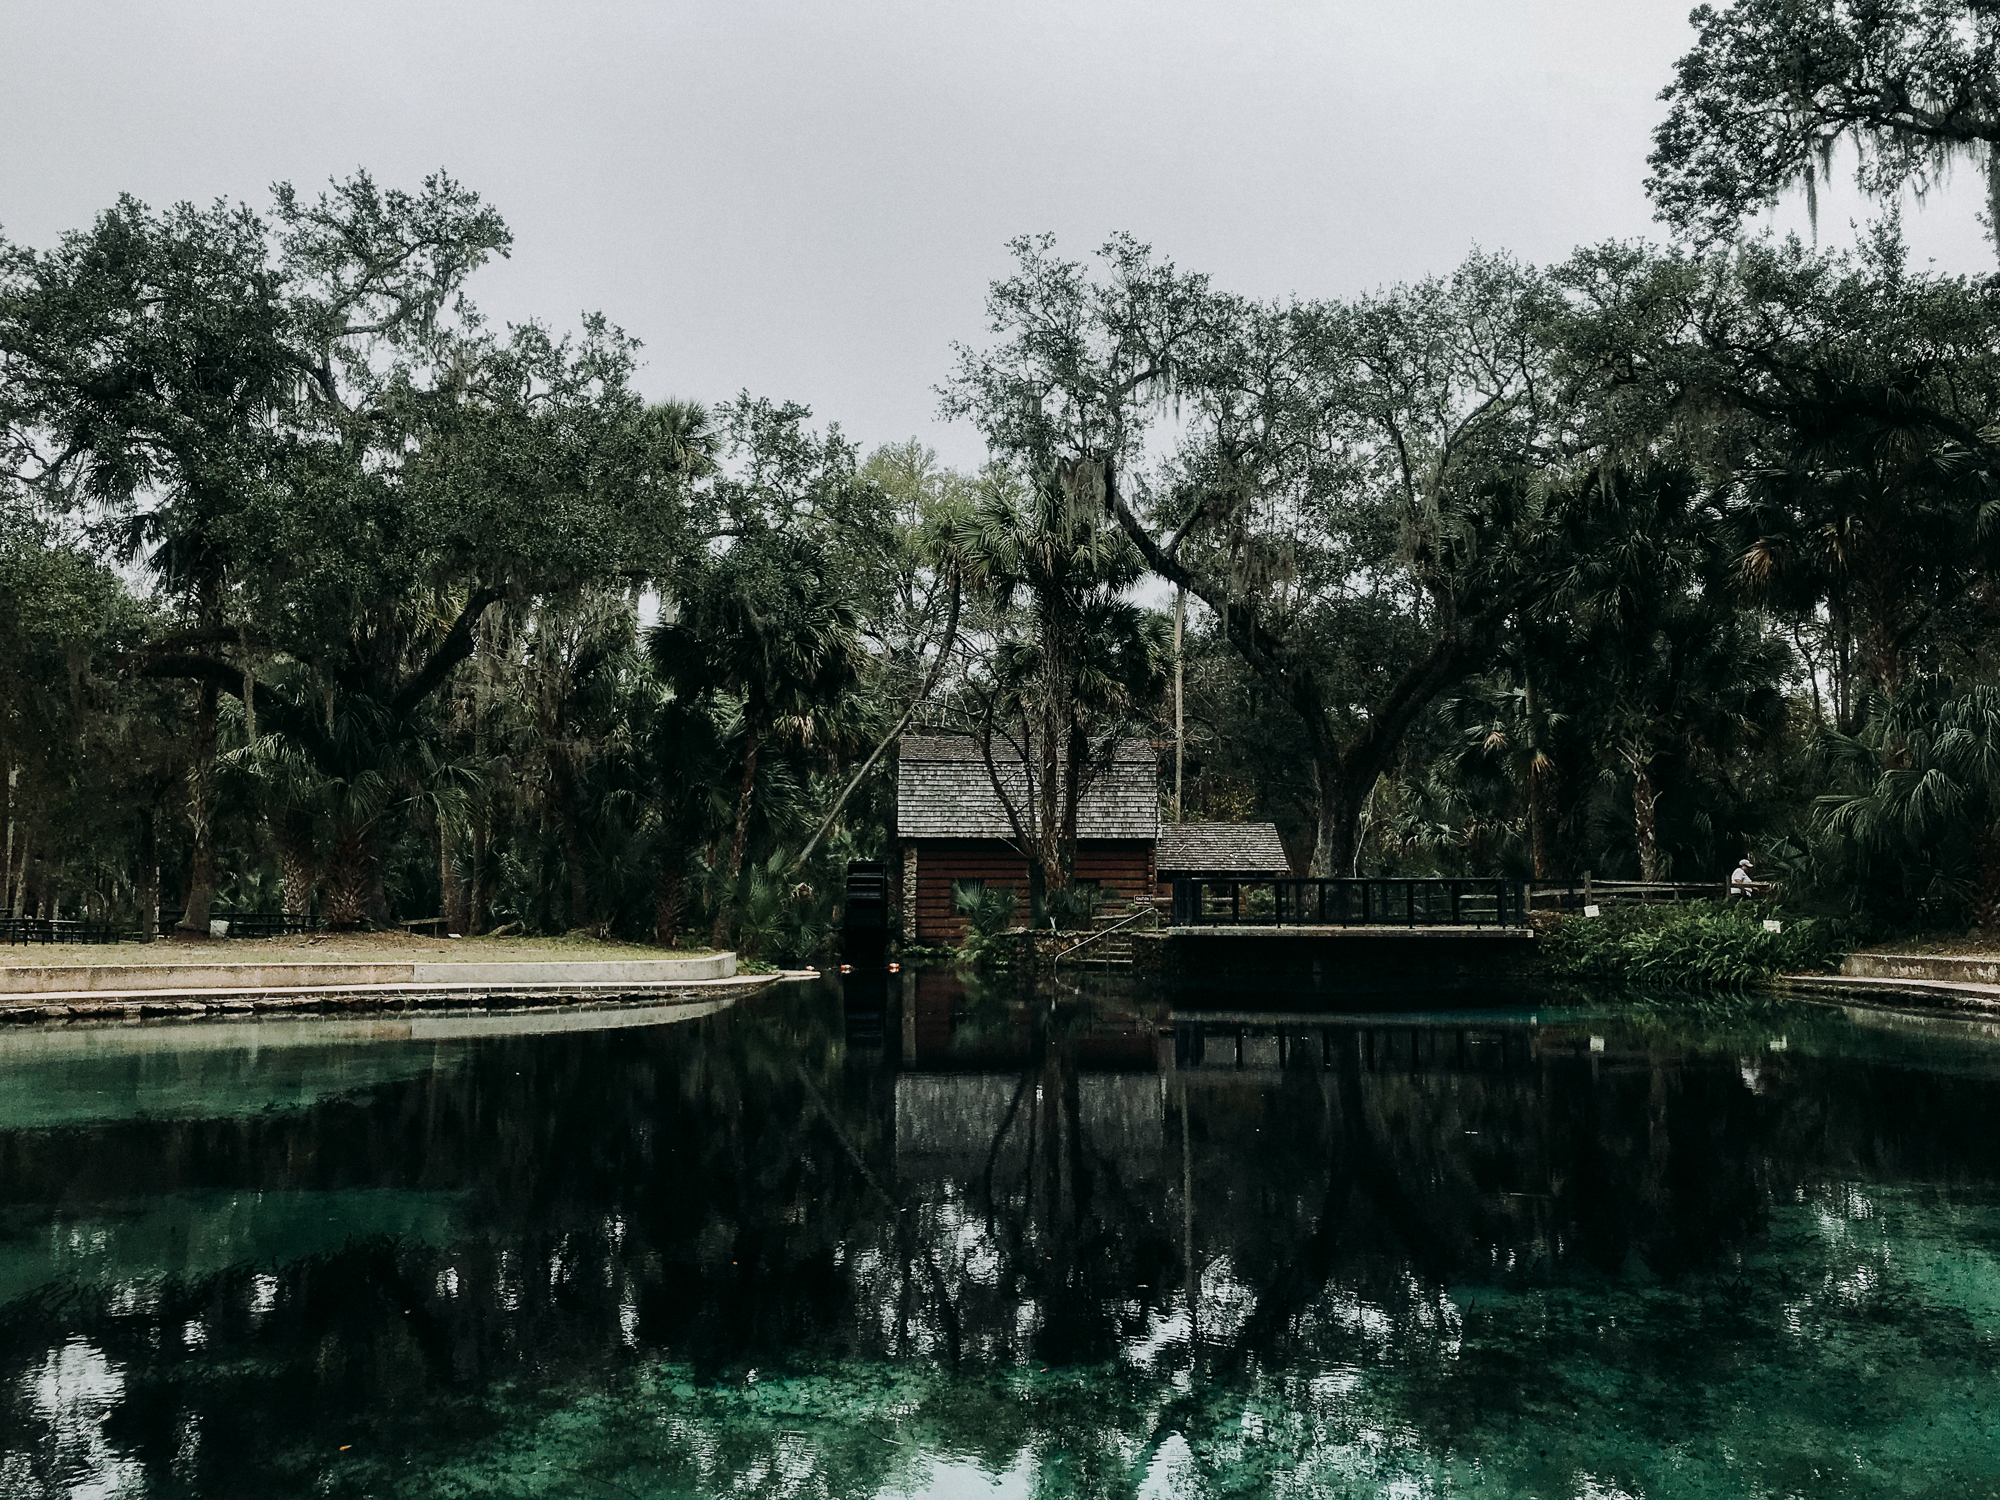 From-Coast-to-Coast-Camping-Juniper-Springs-ocala-national-forest-19-.jpg